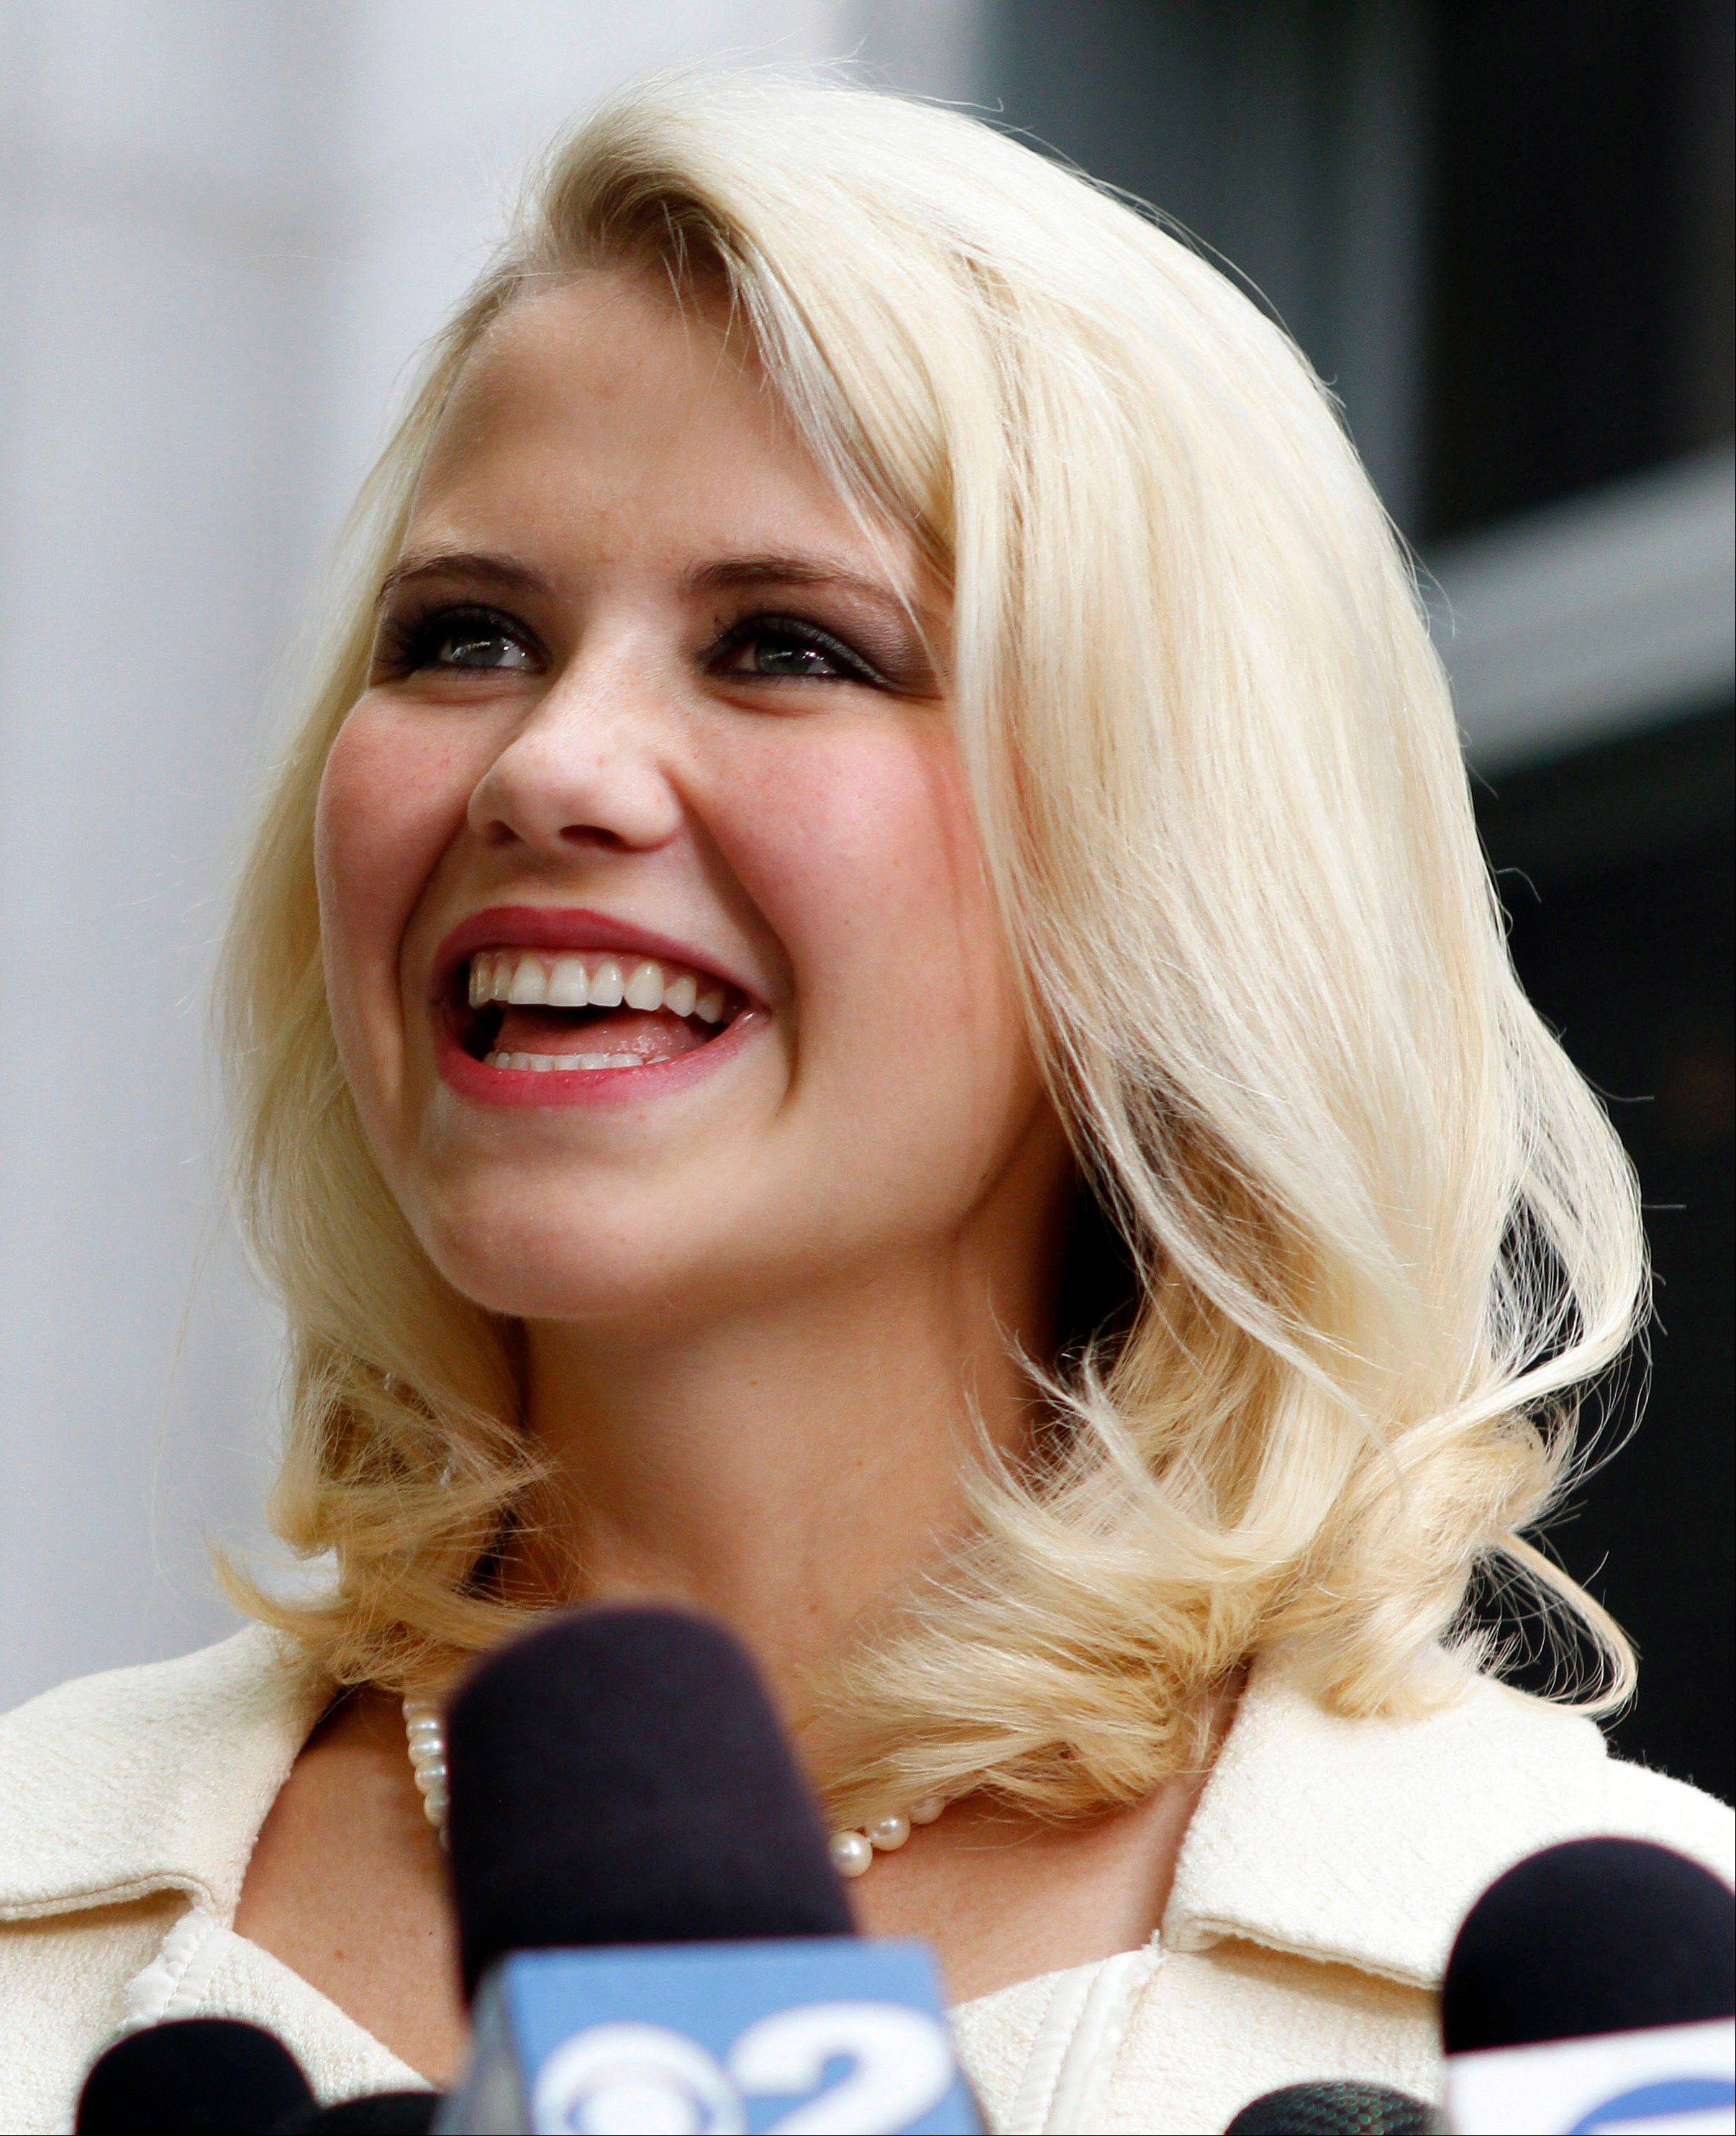 Elizabeth Smart says she's overjoyed to hear about the happy ending for the Cleveland women who escaped Monday after being missing a decade.